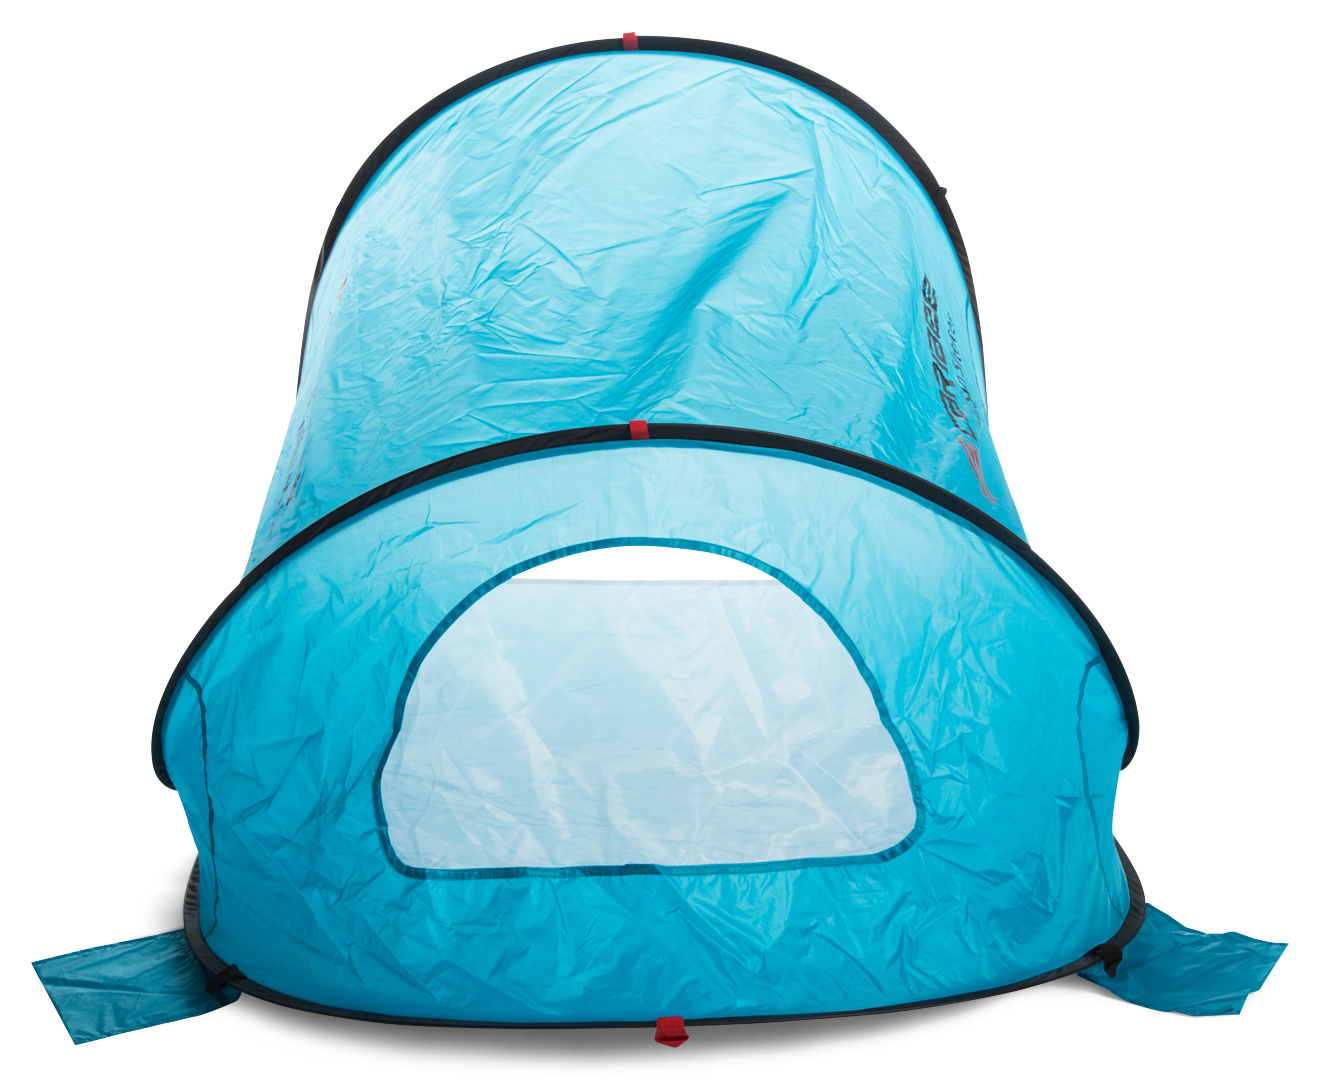 Caribee Rapid Beach Sun Shelter - Blue   Great daily deals at Australiau0027s favourite superstore   Catch.com.au  sc 1 st  Catch & Caribee Rapid Beach Sun Shelter - Blue   Great daily deals at ...